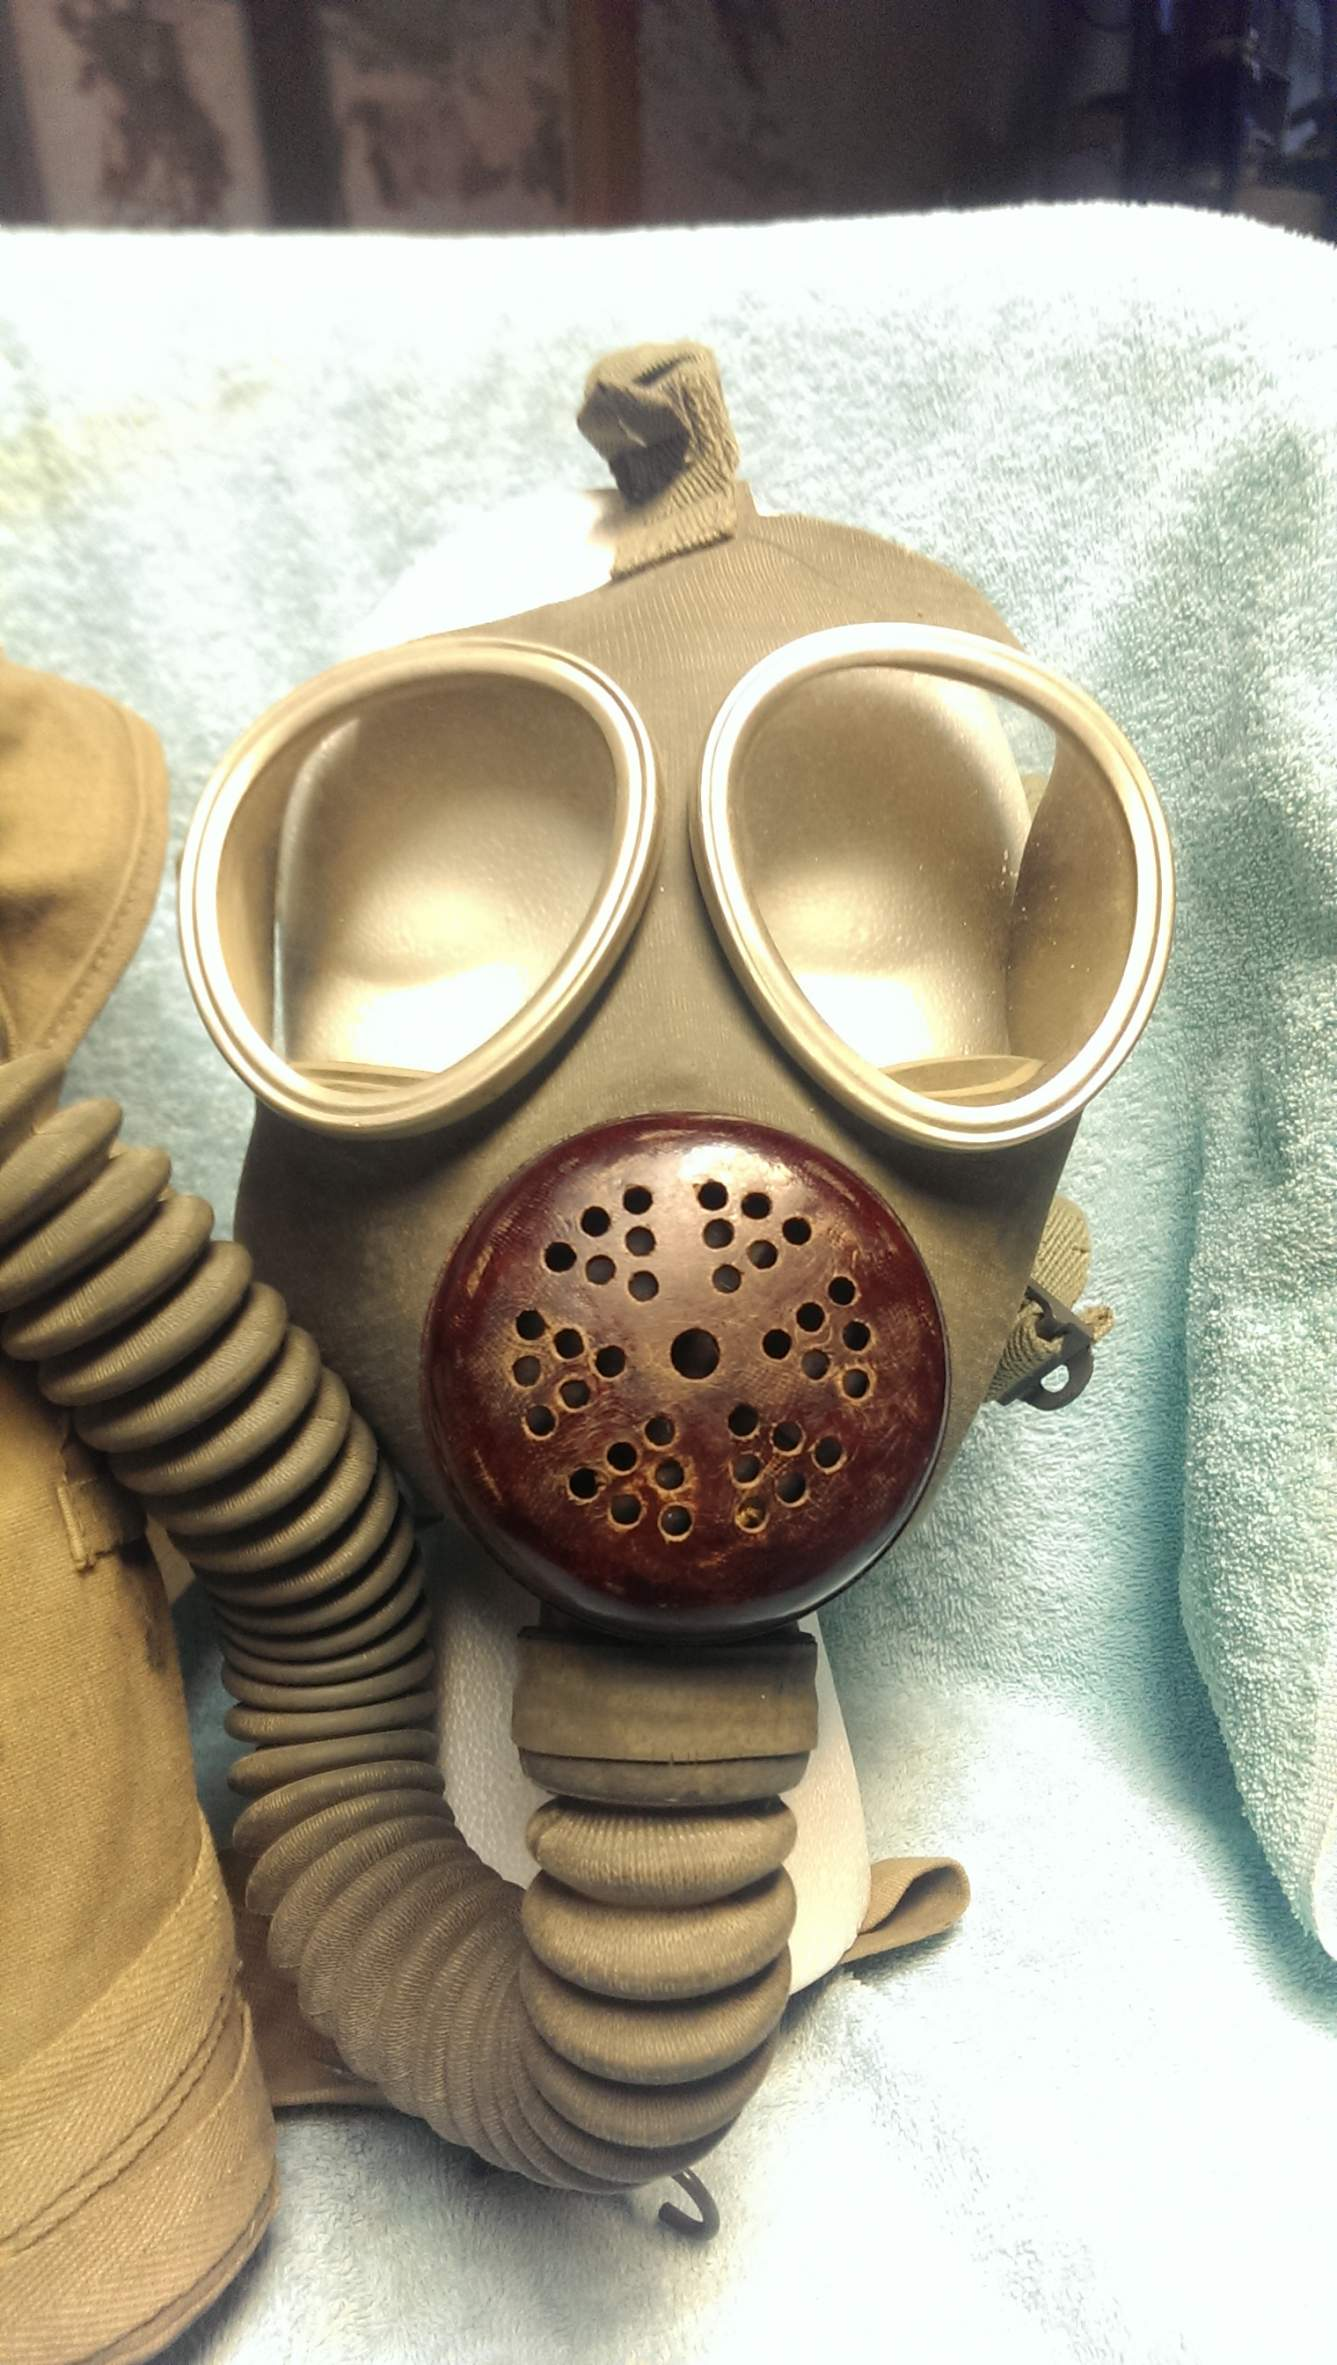 Find Gas Near Me >> Type 93 - Model 2 Japanese Gas Mask